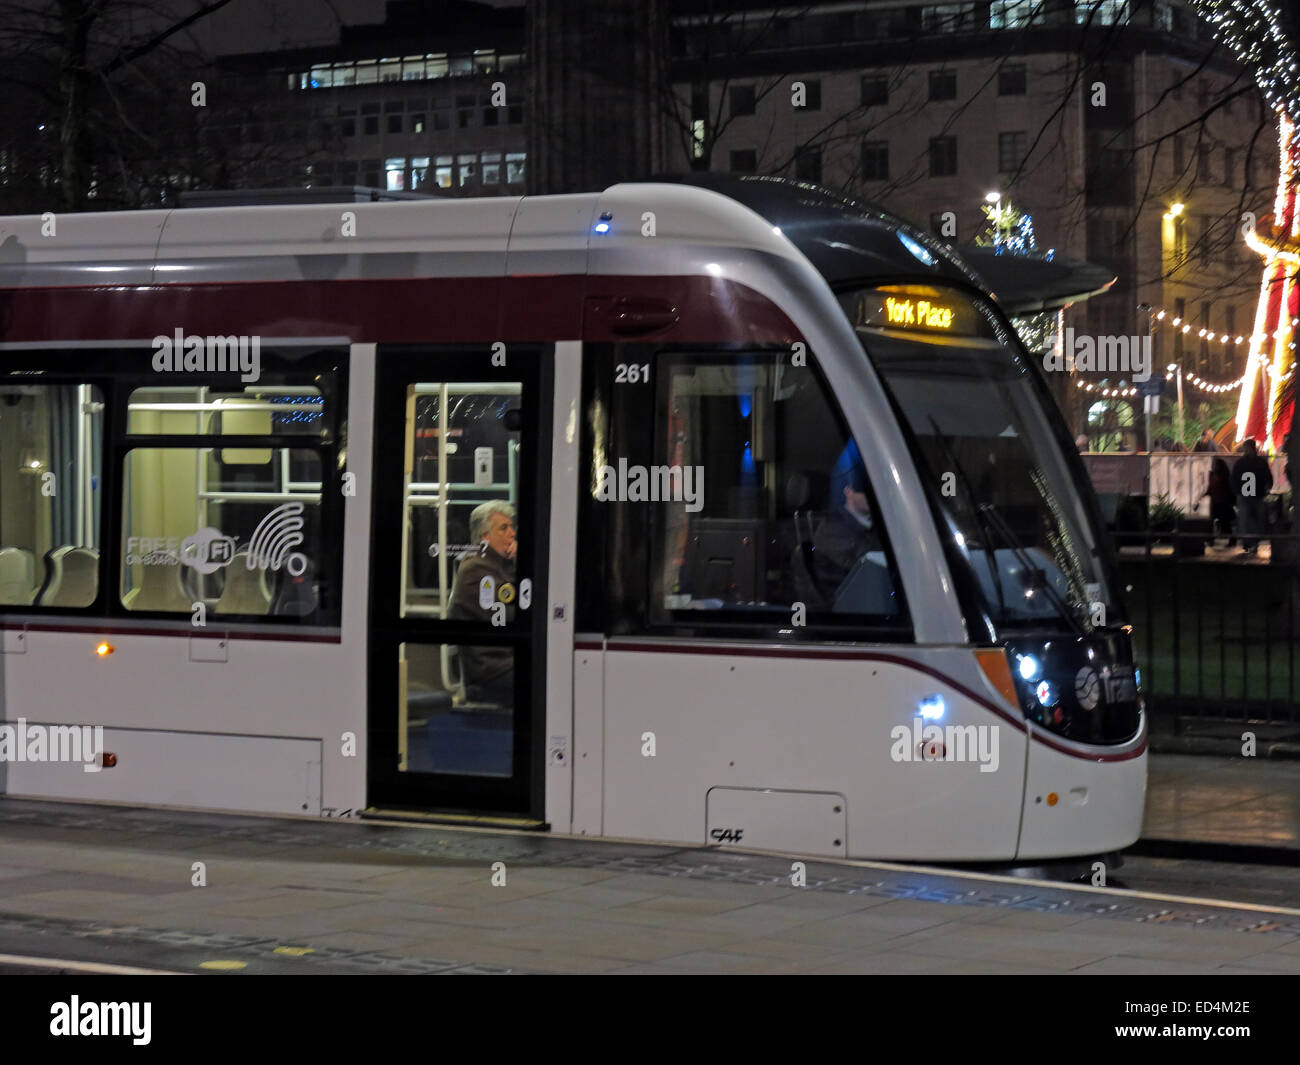 Front of New Edinburgh Tram bound for York Place, in St Andrew Square at night, Scotland, UK - Stock Image